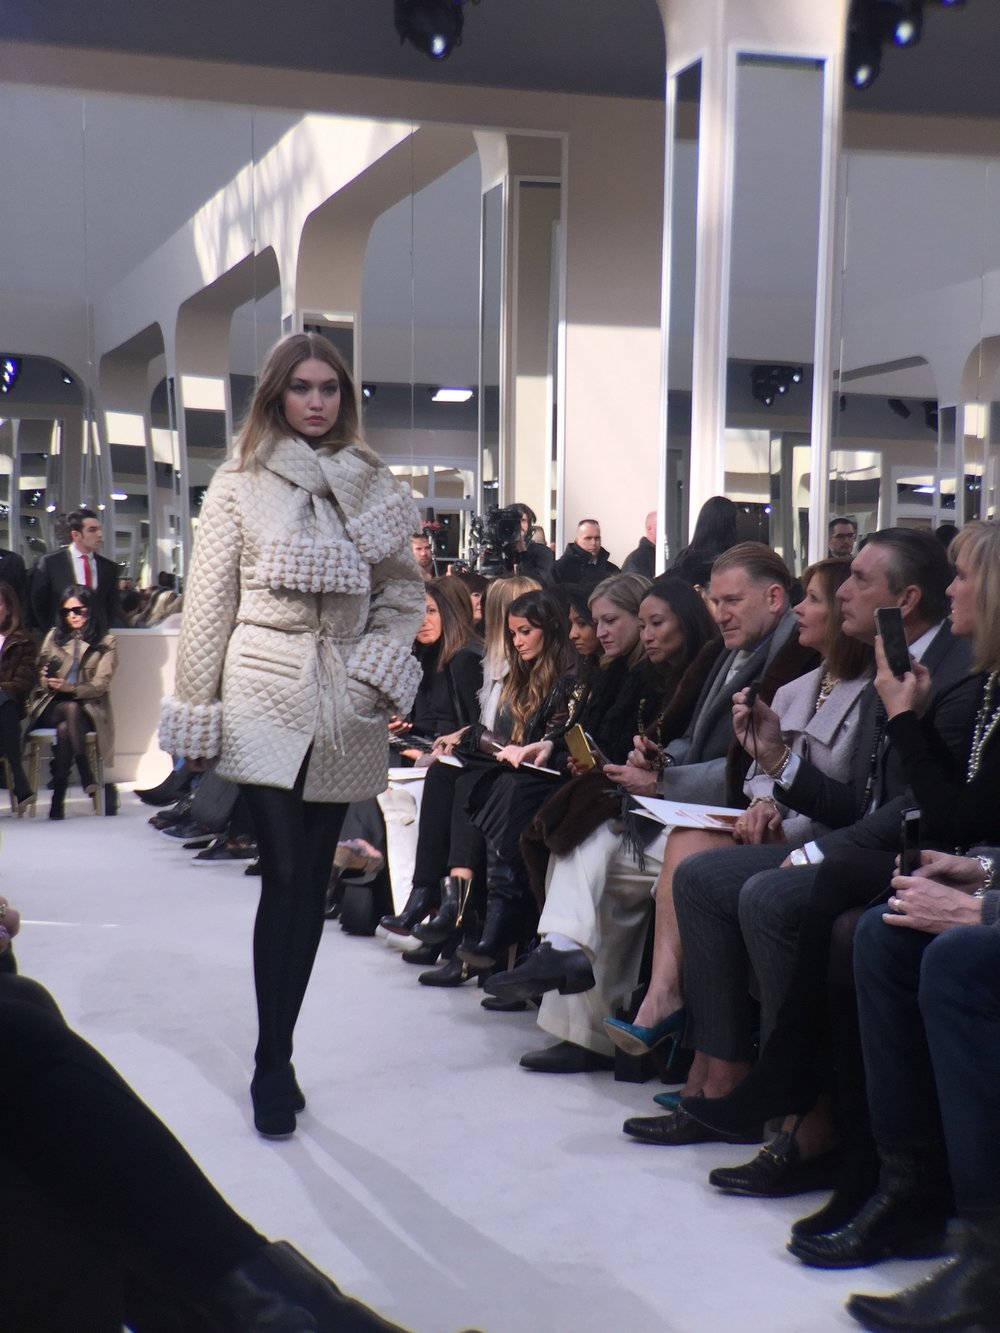 Paris Fashion Week Chanel Fall 2016 - Gigi Hadid in a quilted beige coat and black tights